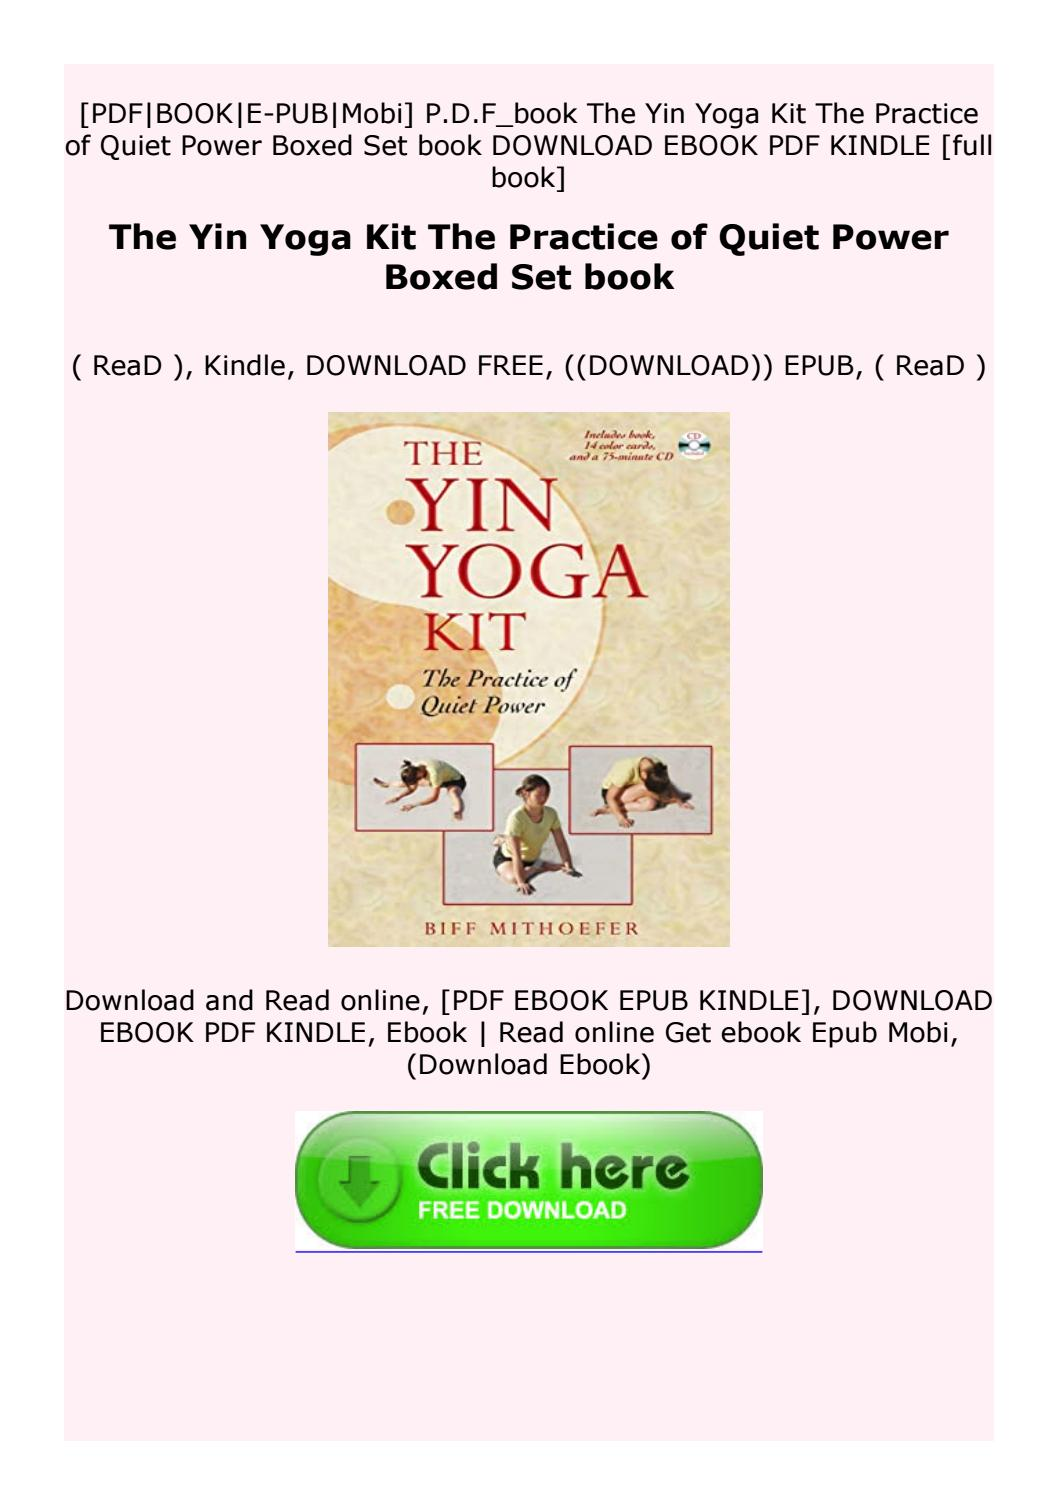 Full Pages The Yin Yoga Kit The Practice Of Quiet Power Boxed Set Book By Vdxgtrdgvdfdcz Issuu